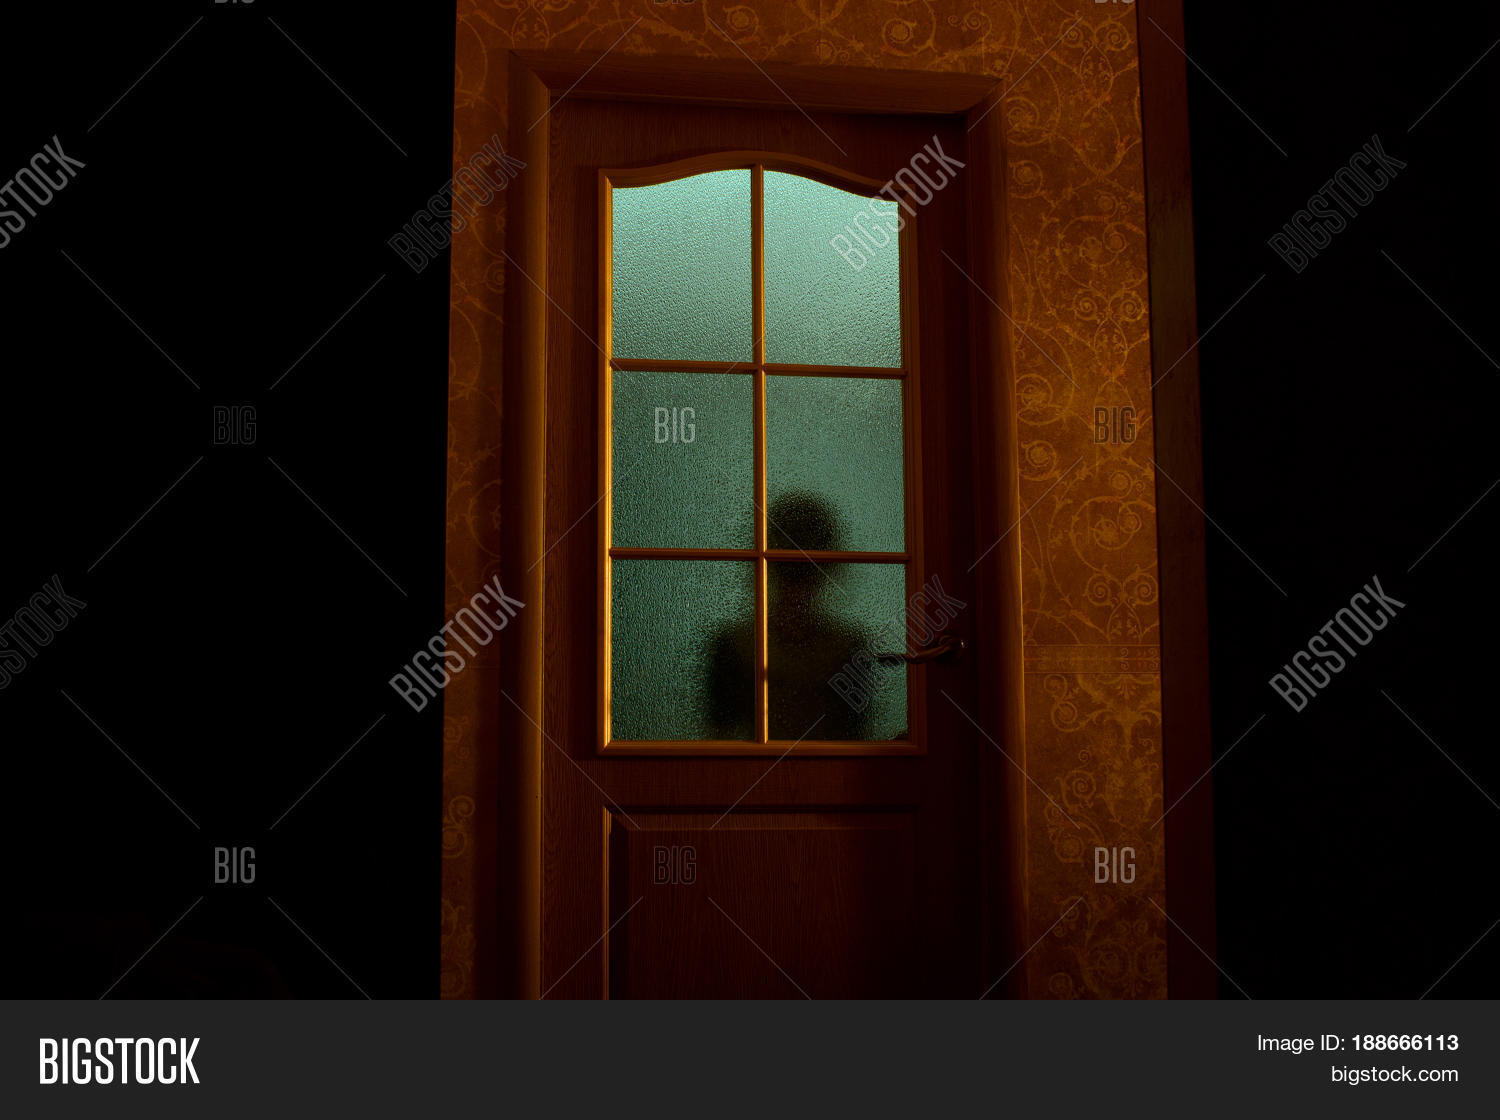 Blurred Silhouette Image Photo Free Trial Bigstock